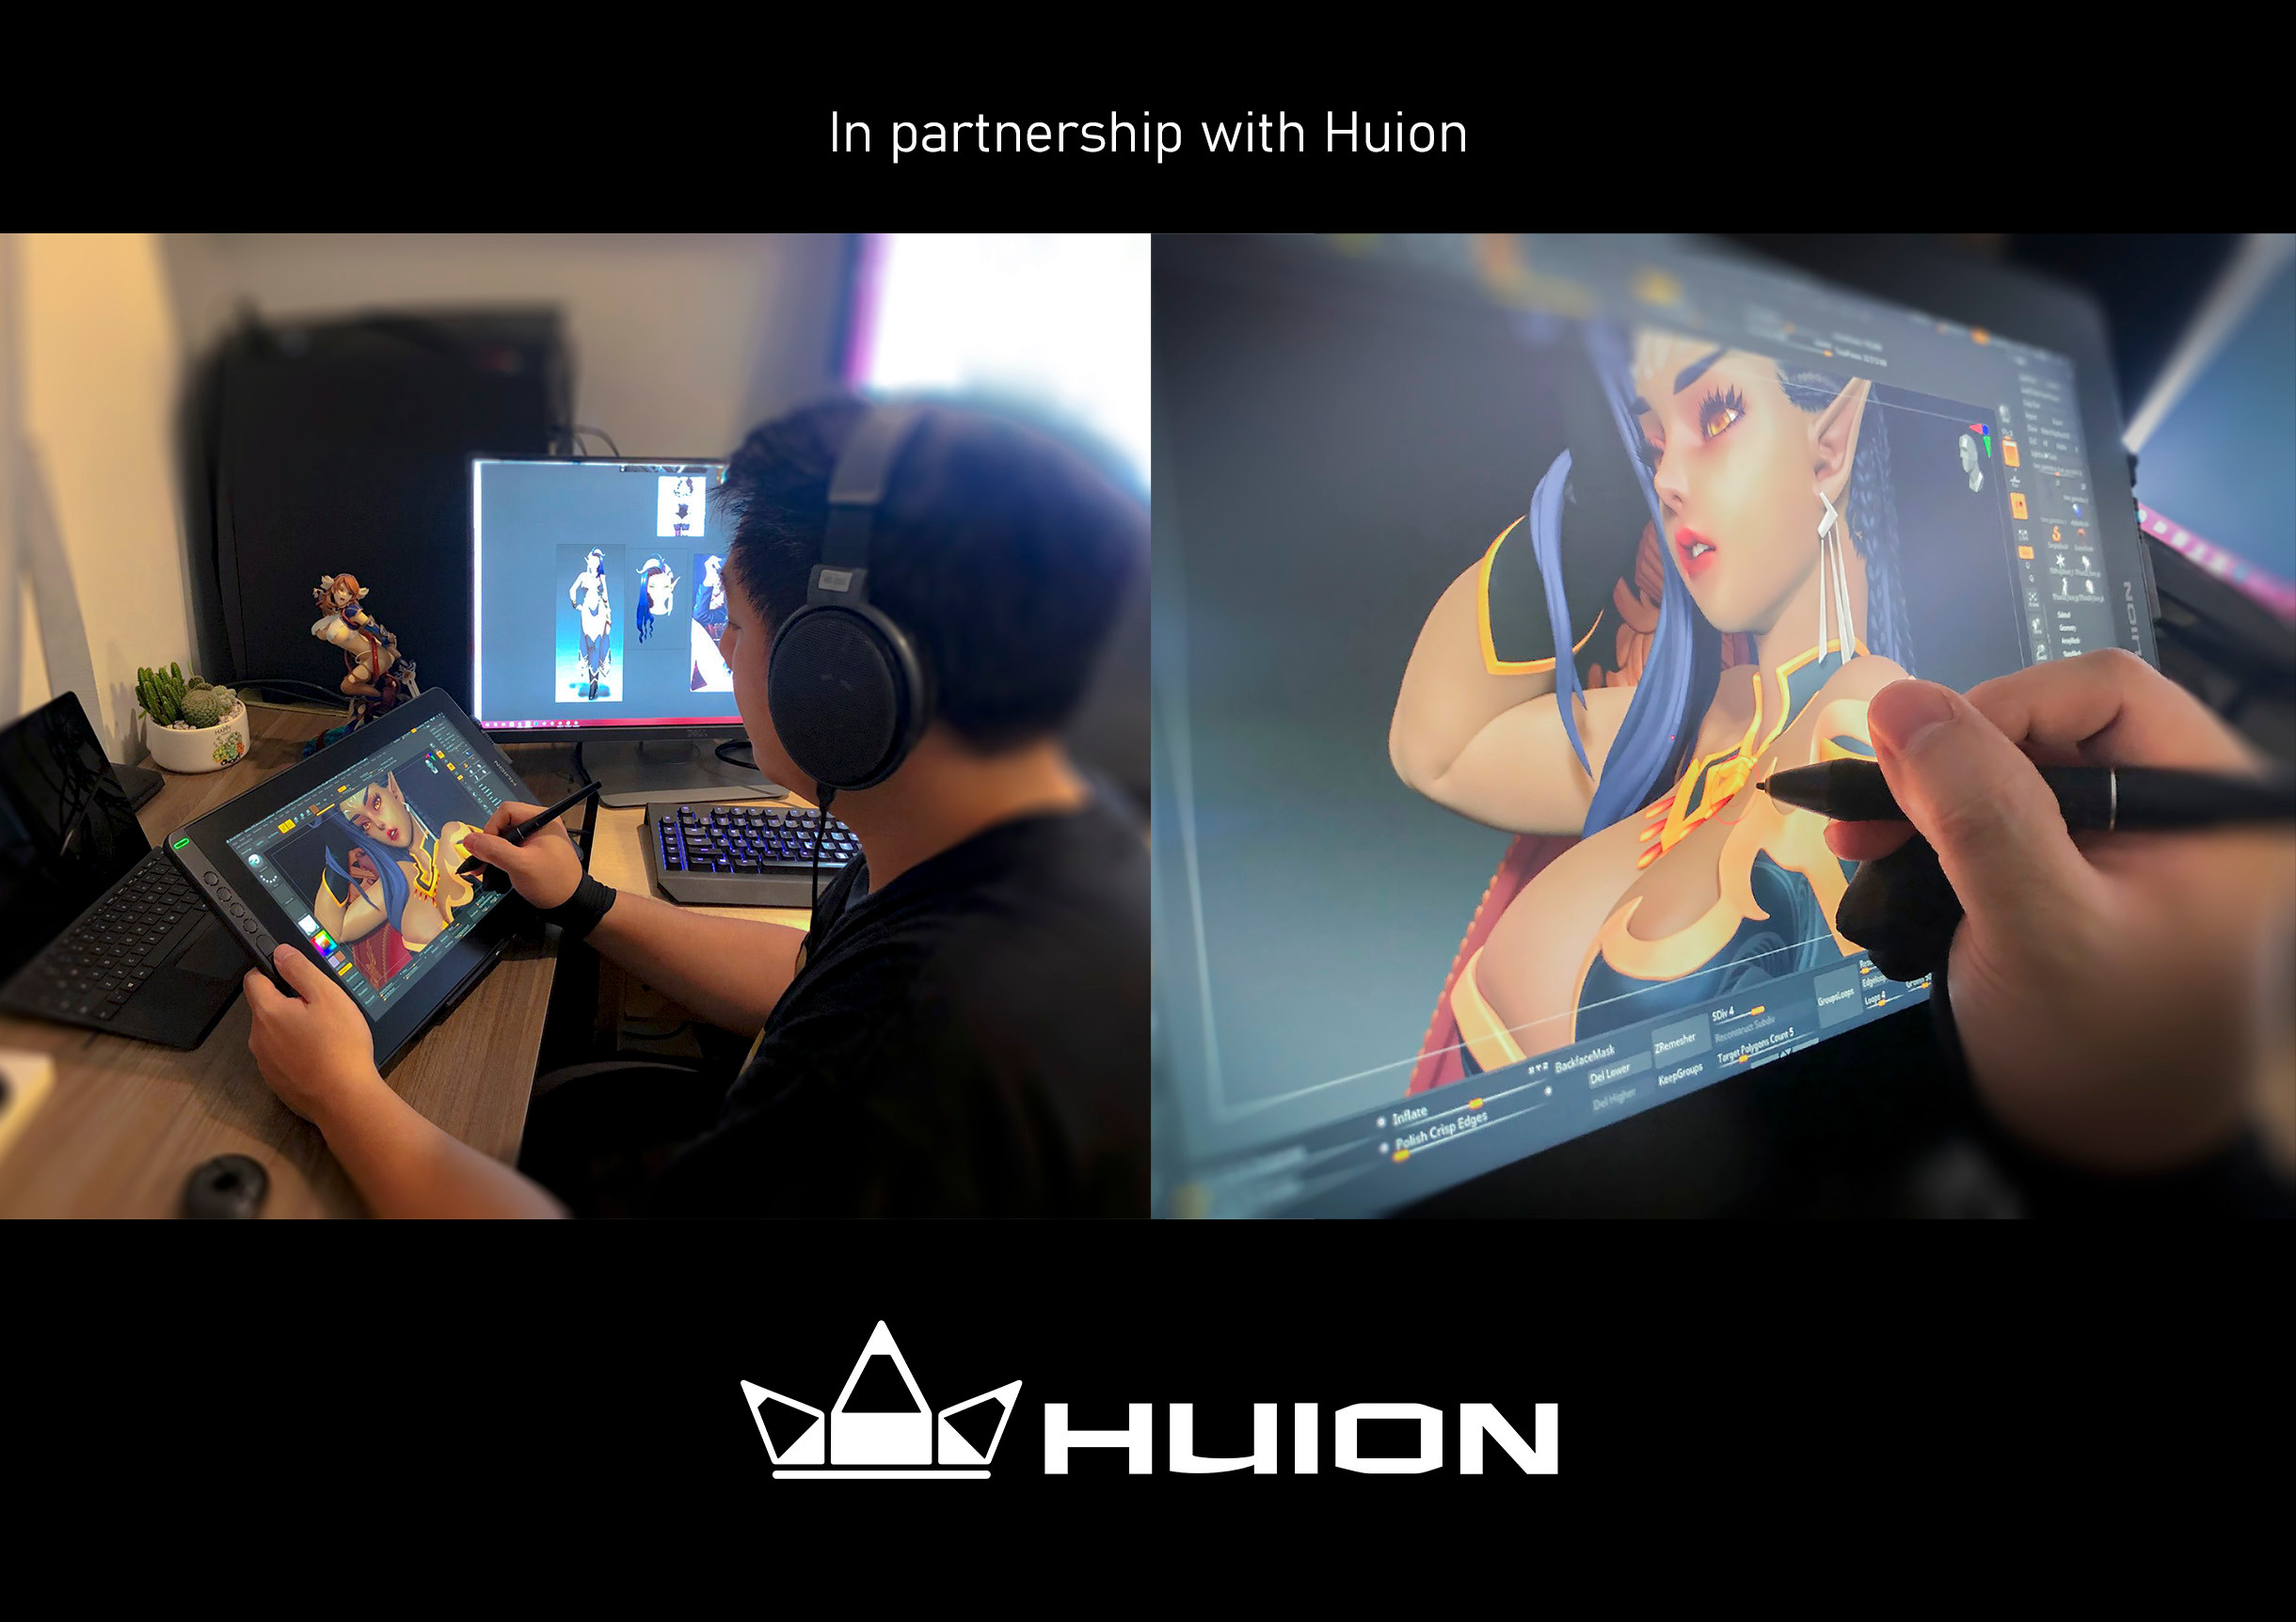 Special thanks to sponsorship of Huion that I have the opportunities to hand-on trying out the kamvas 16 to work on this project. It was a pleasure and unique experience using this one, giving me much more mobile flexibility and comfortable workplace